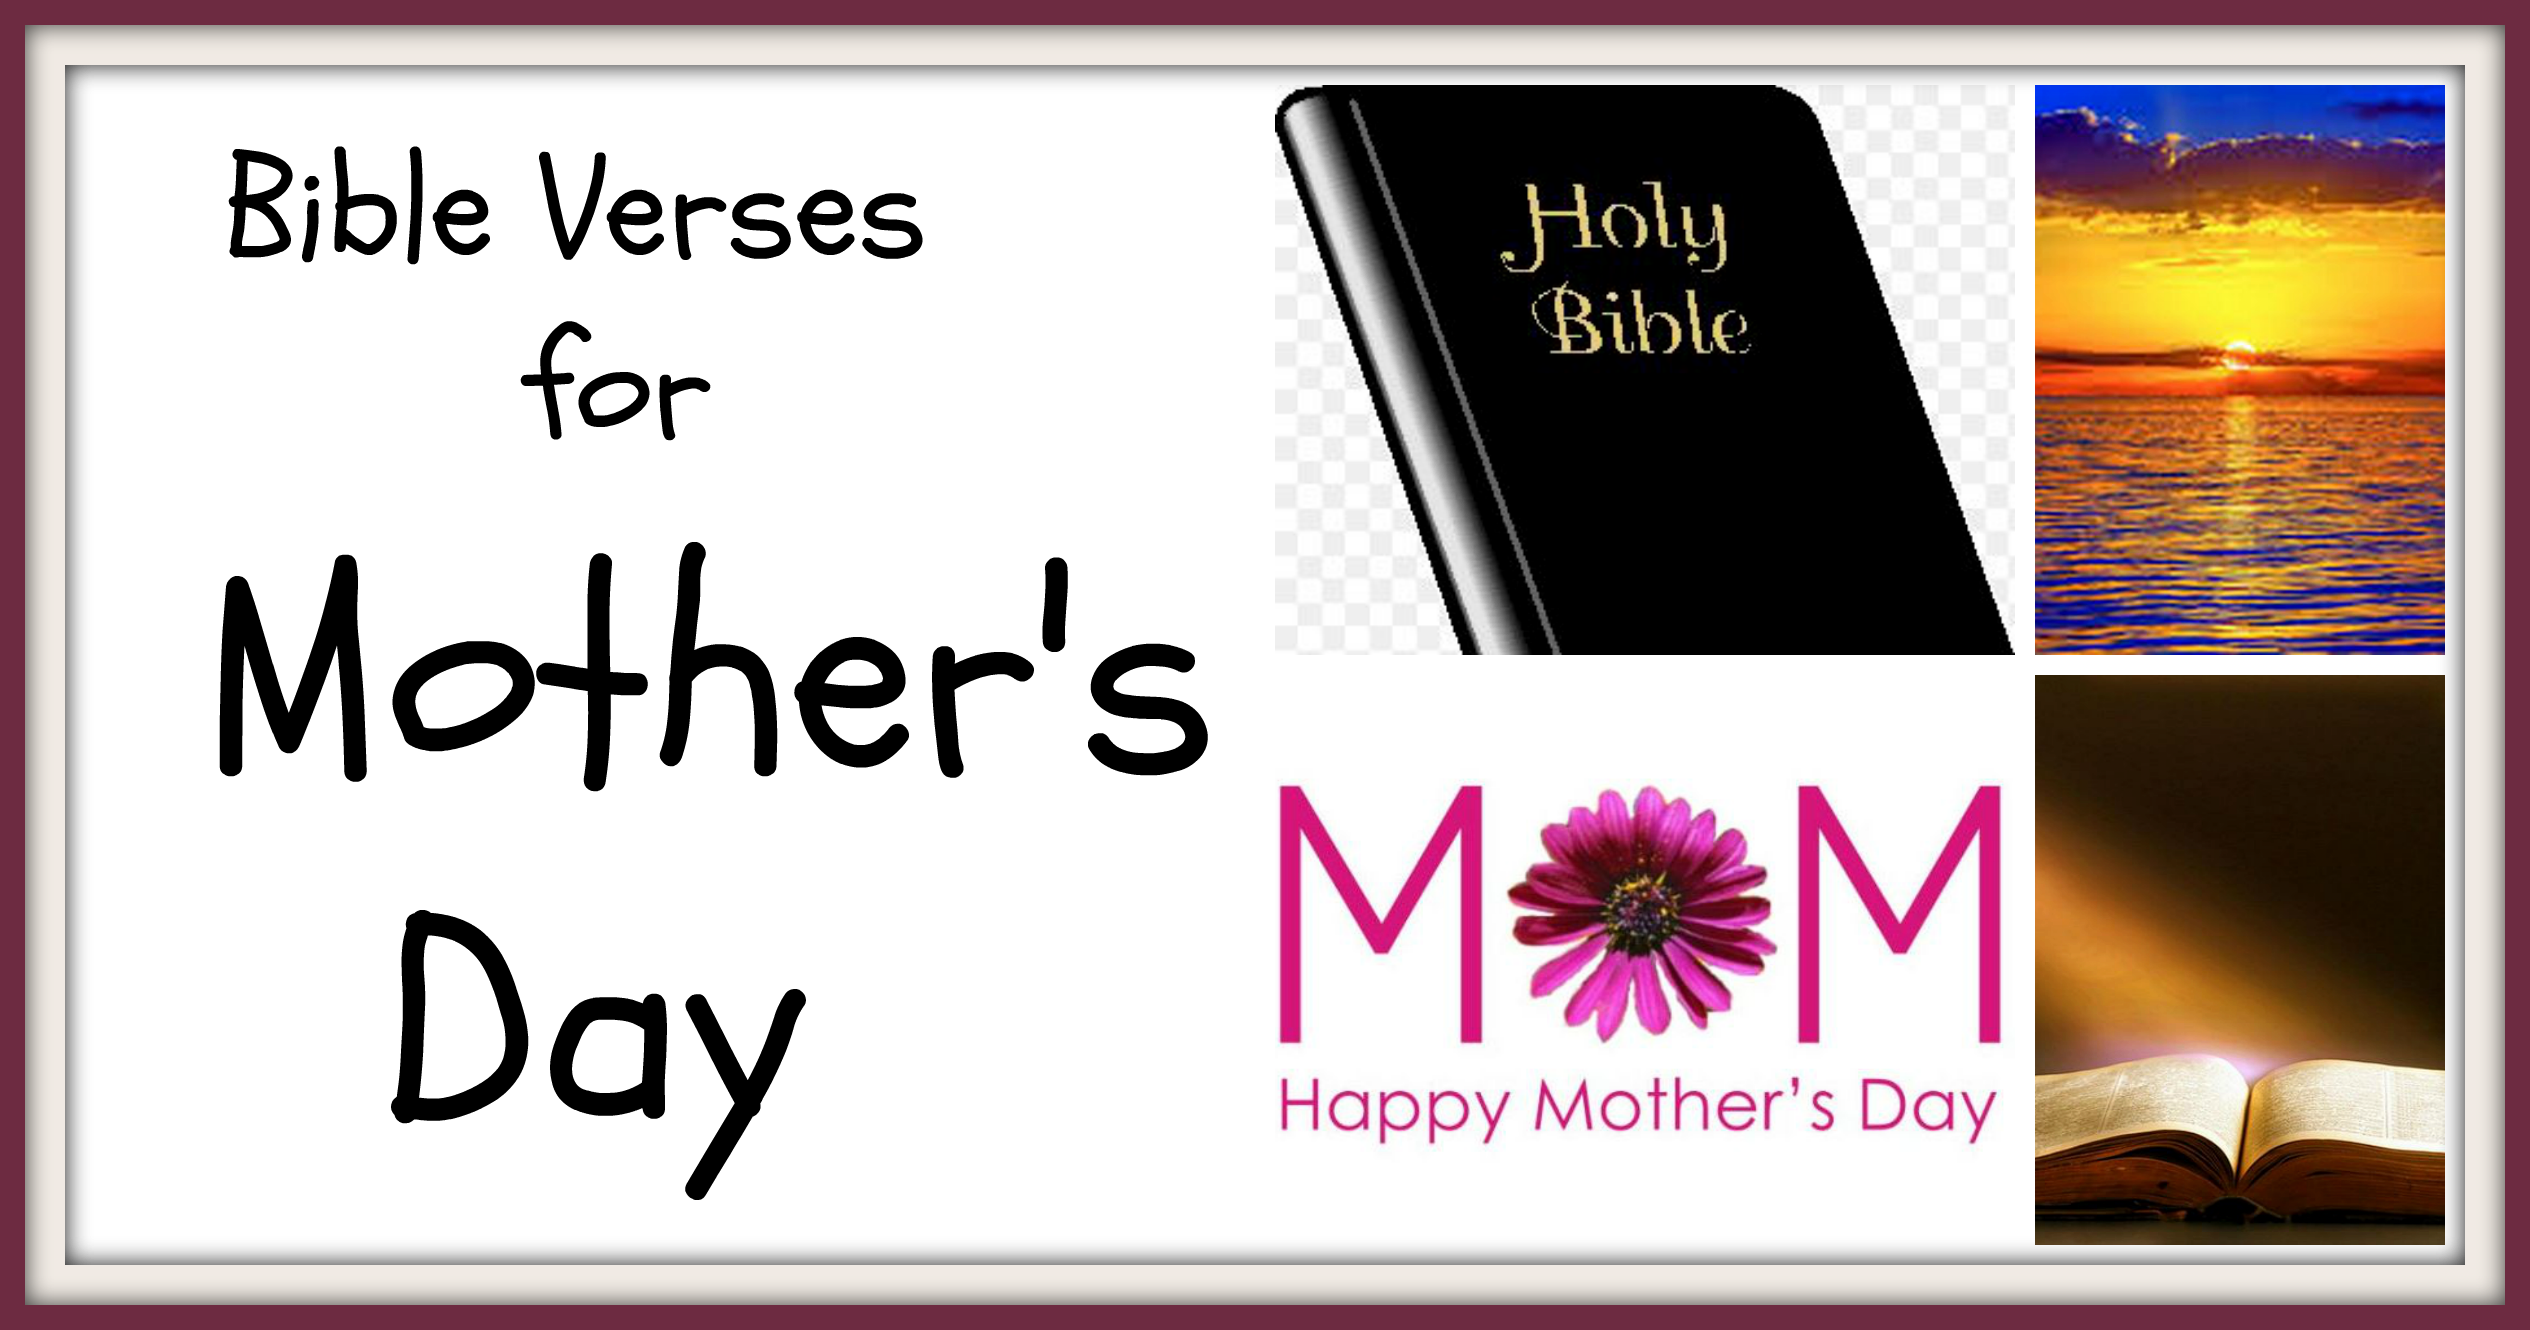 Bible Quotes About Mothers Unique Bible Verses For Mother's Day  Family Finds Fun